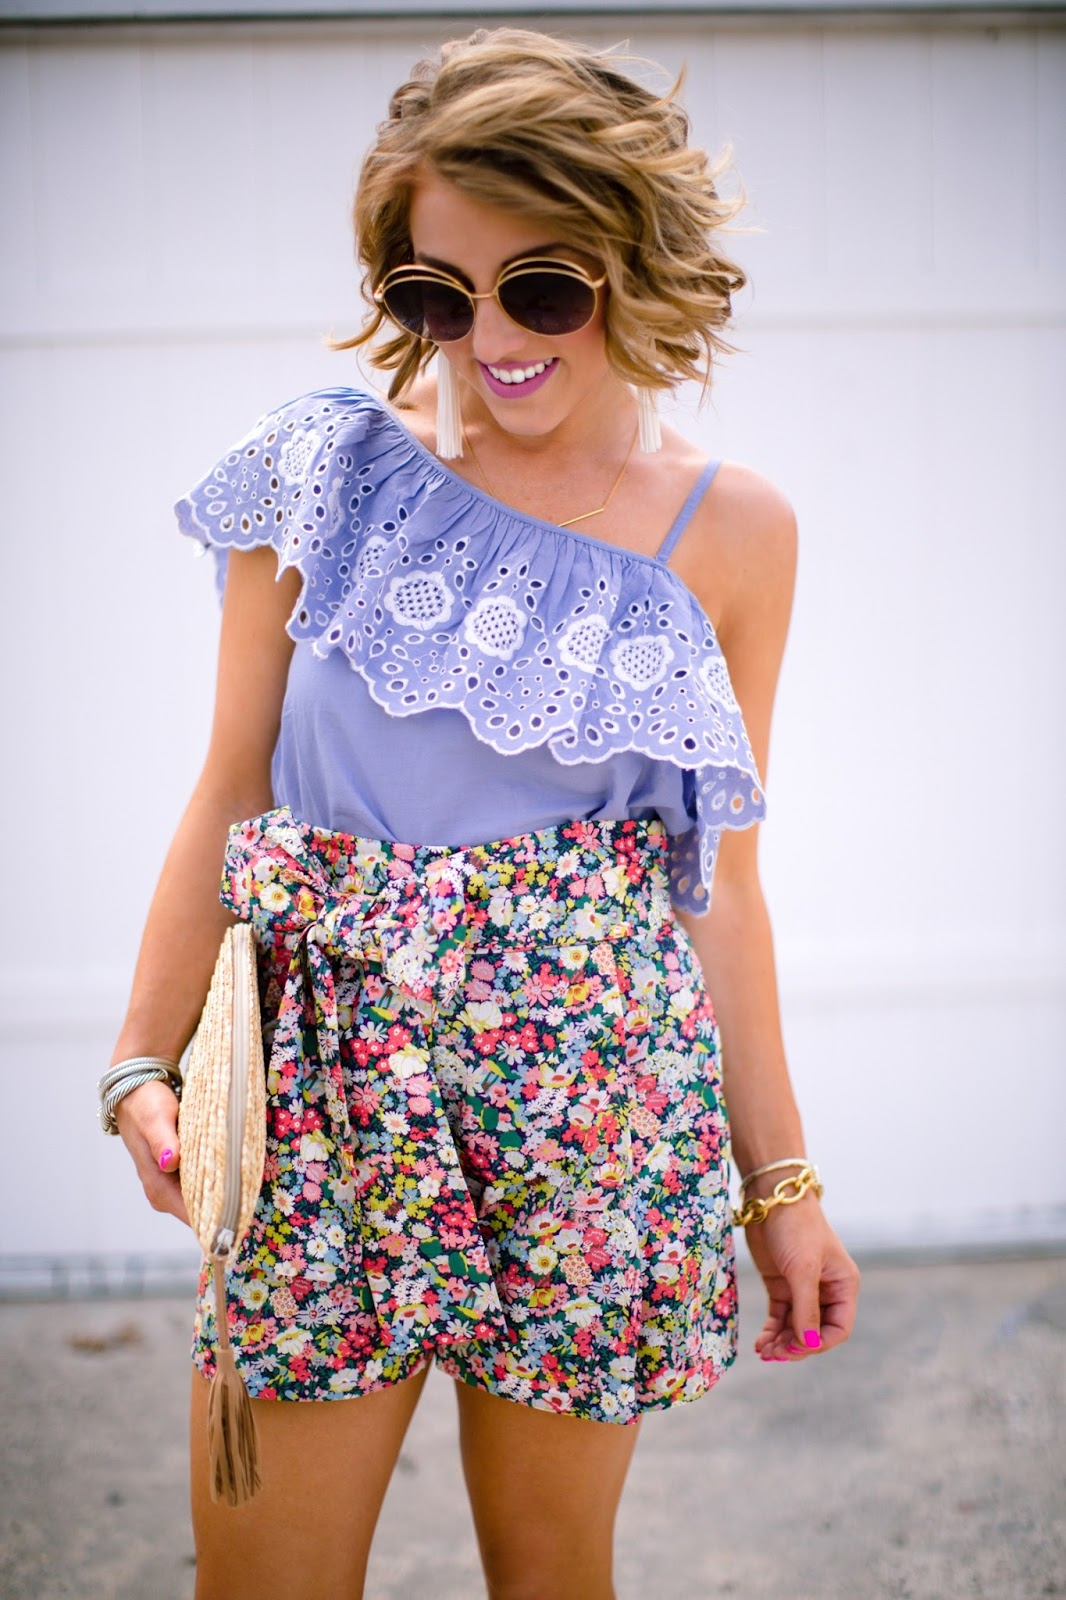 J.Crew Tie-Waist Short - Click through to see more on Something Delightful Blog!